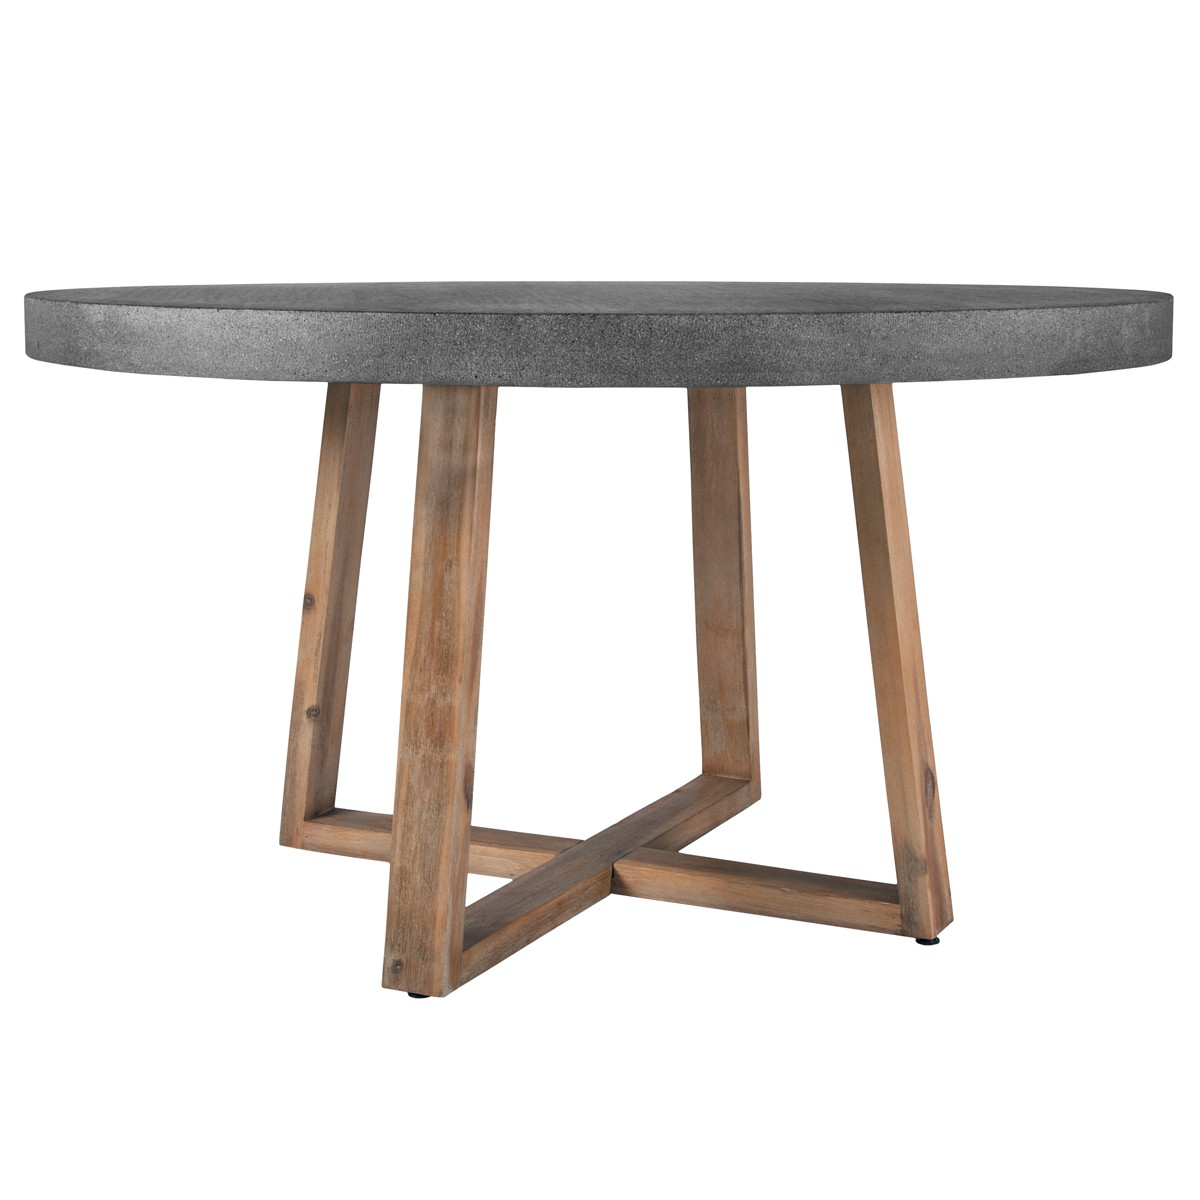 Table ronde r sine et bois 140 cm koya design - Table de salon ronde en bois ...